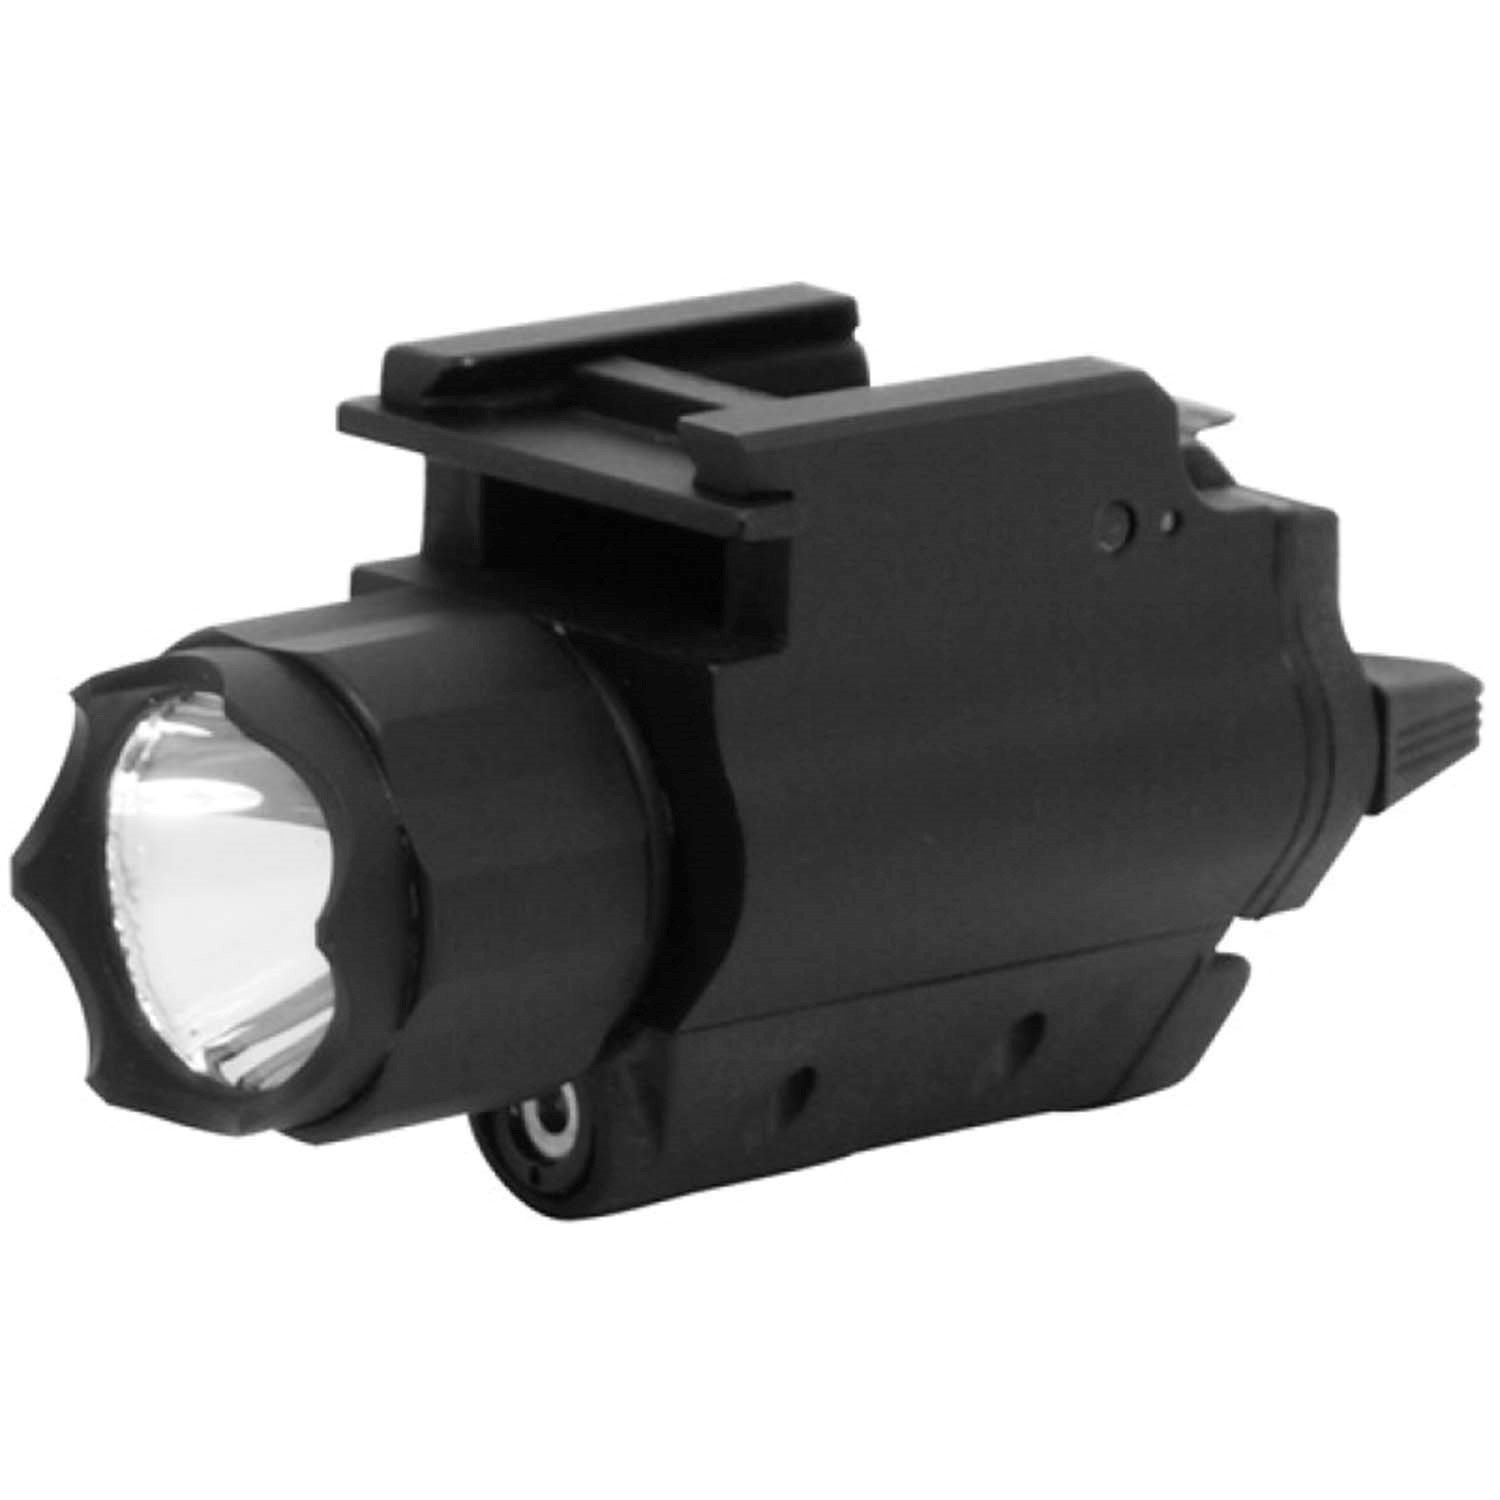 NcStar Tactical Flashlight and Red Laser Sight